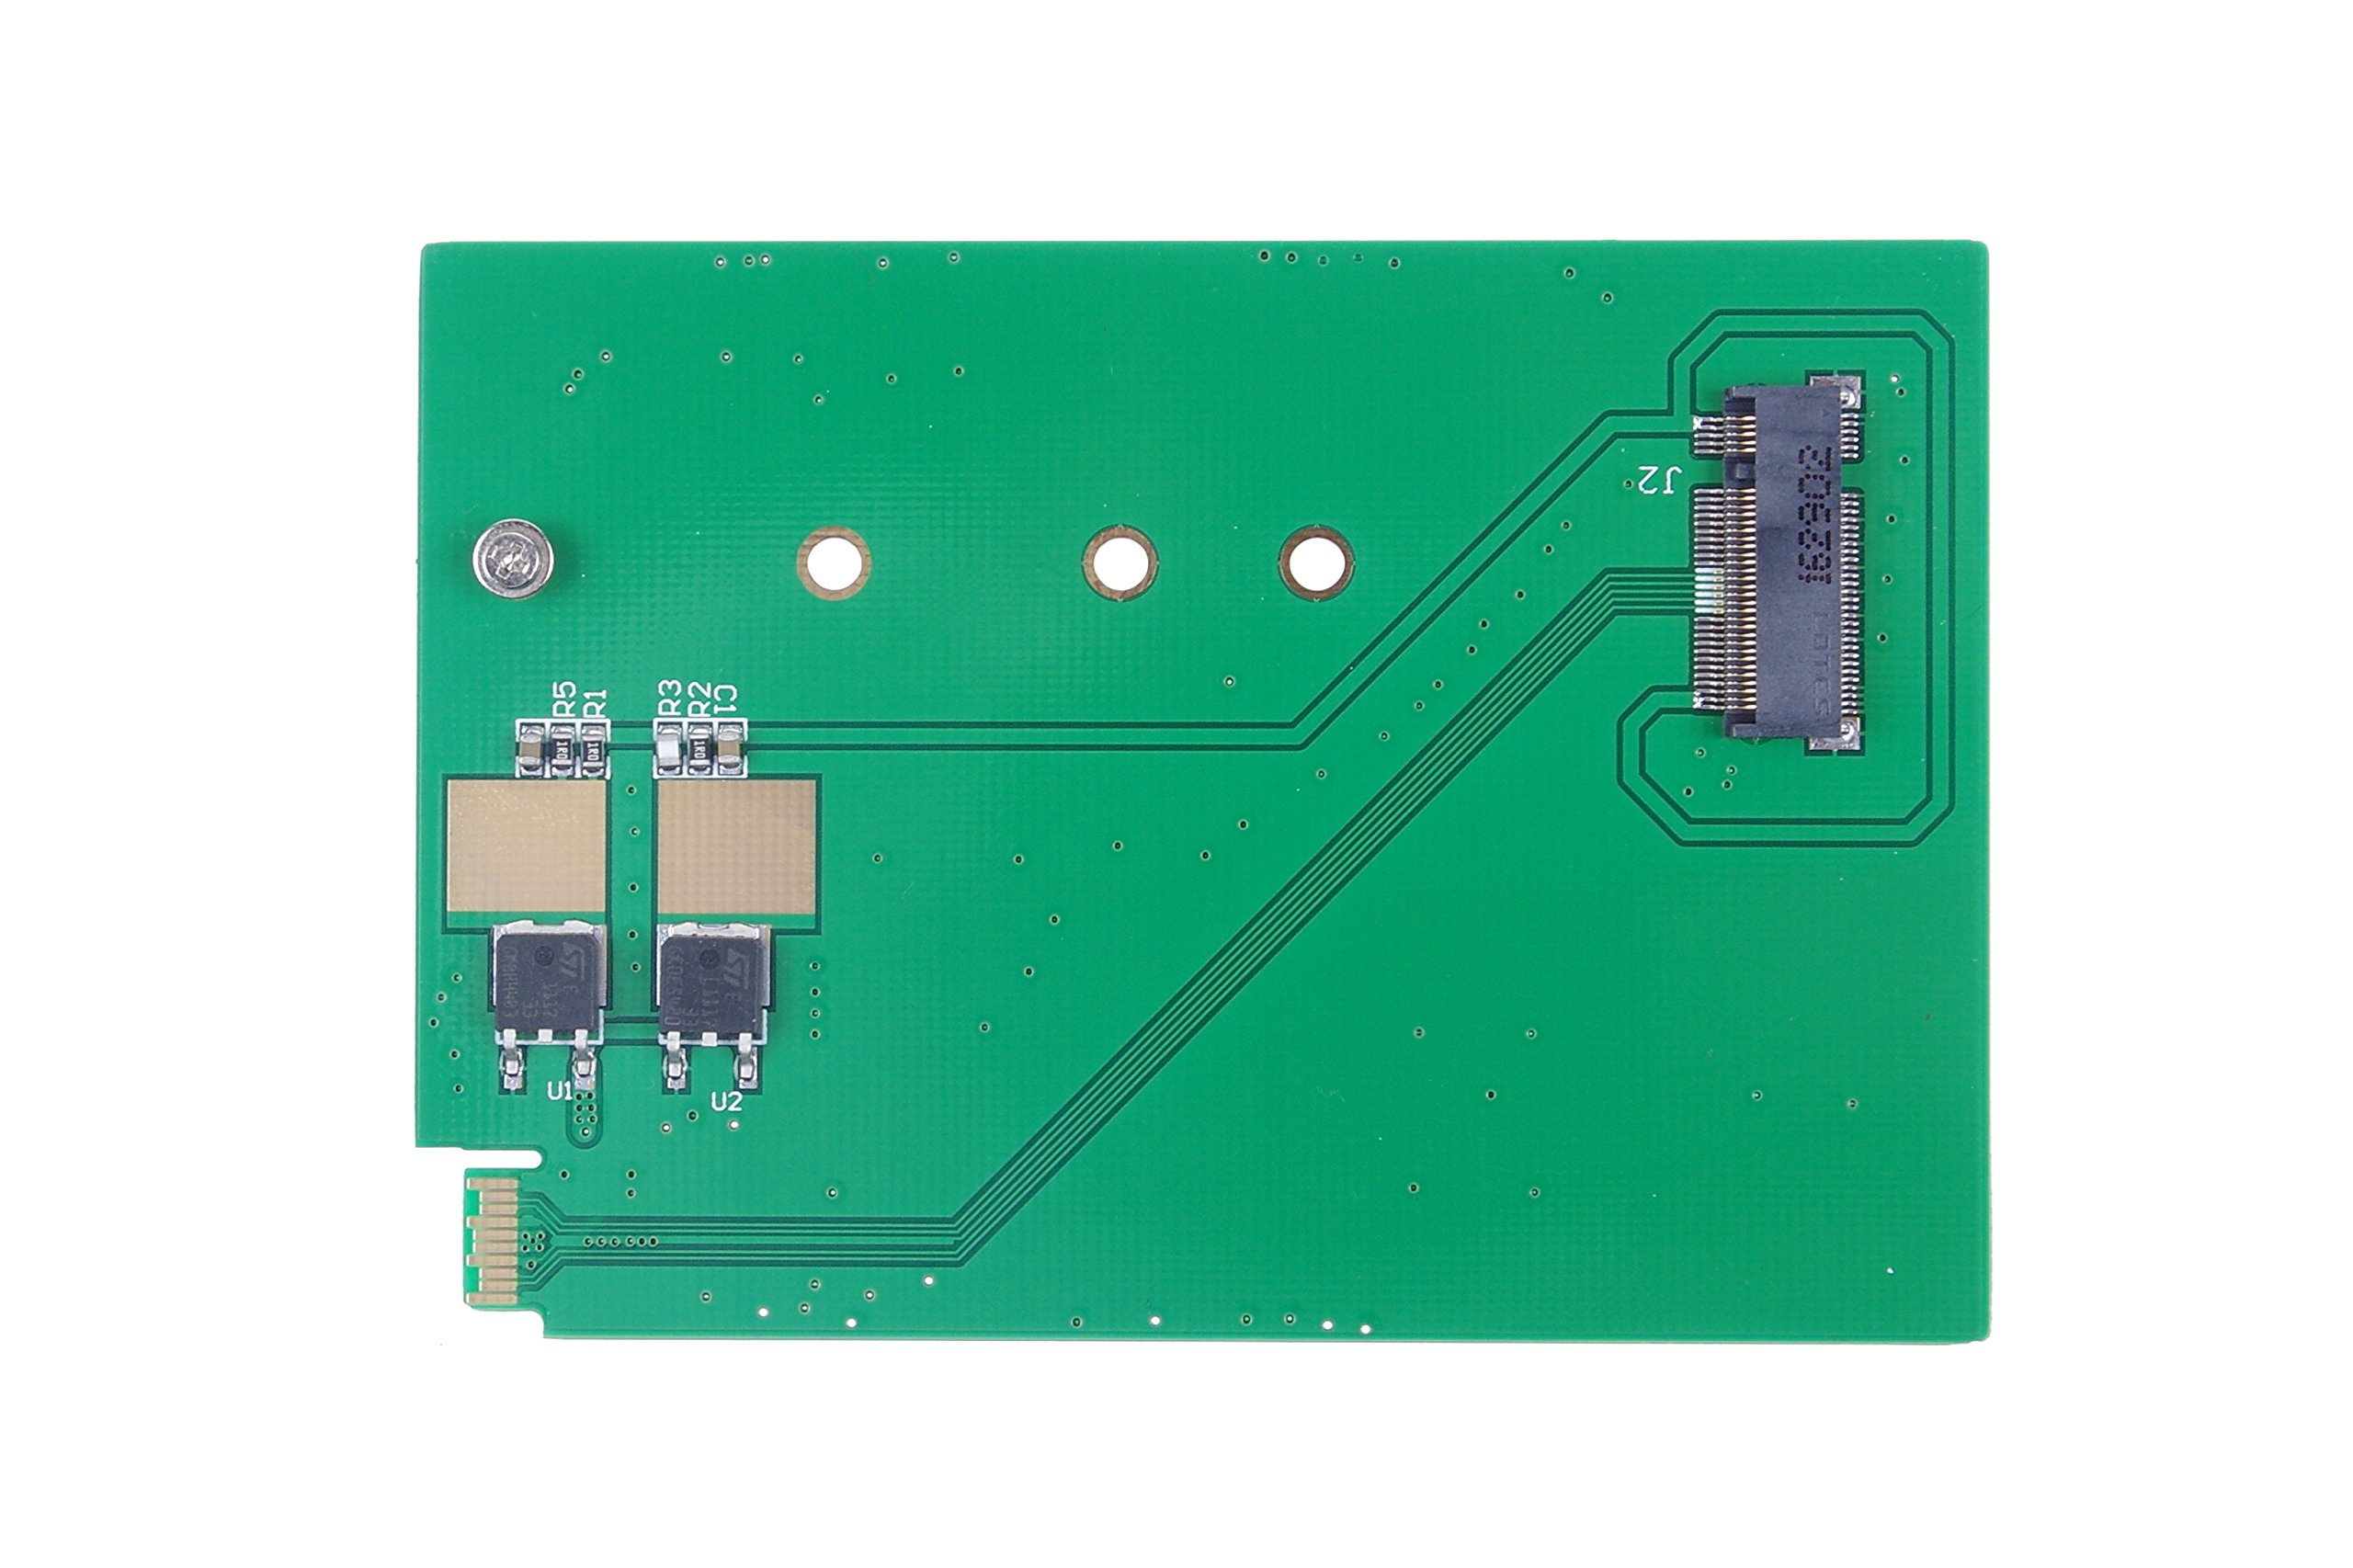 KNACRO M.2 NGFF SSD Adapter Card Replaces the WD5000MPCK WD5000M22K WD5000M21K Riser Card by KNACRO